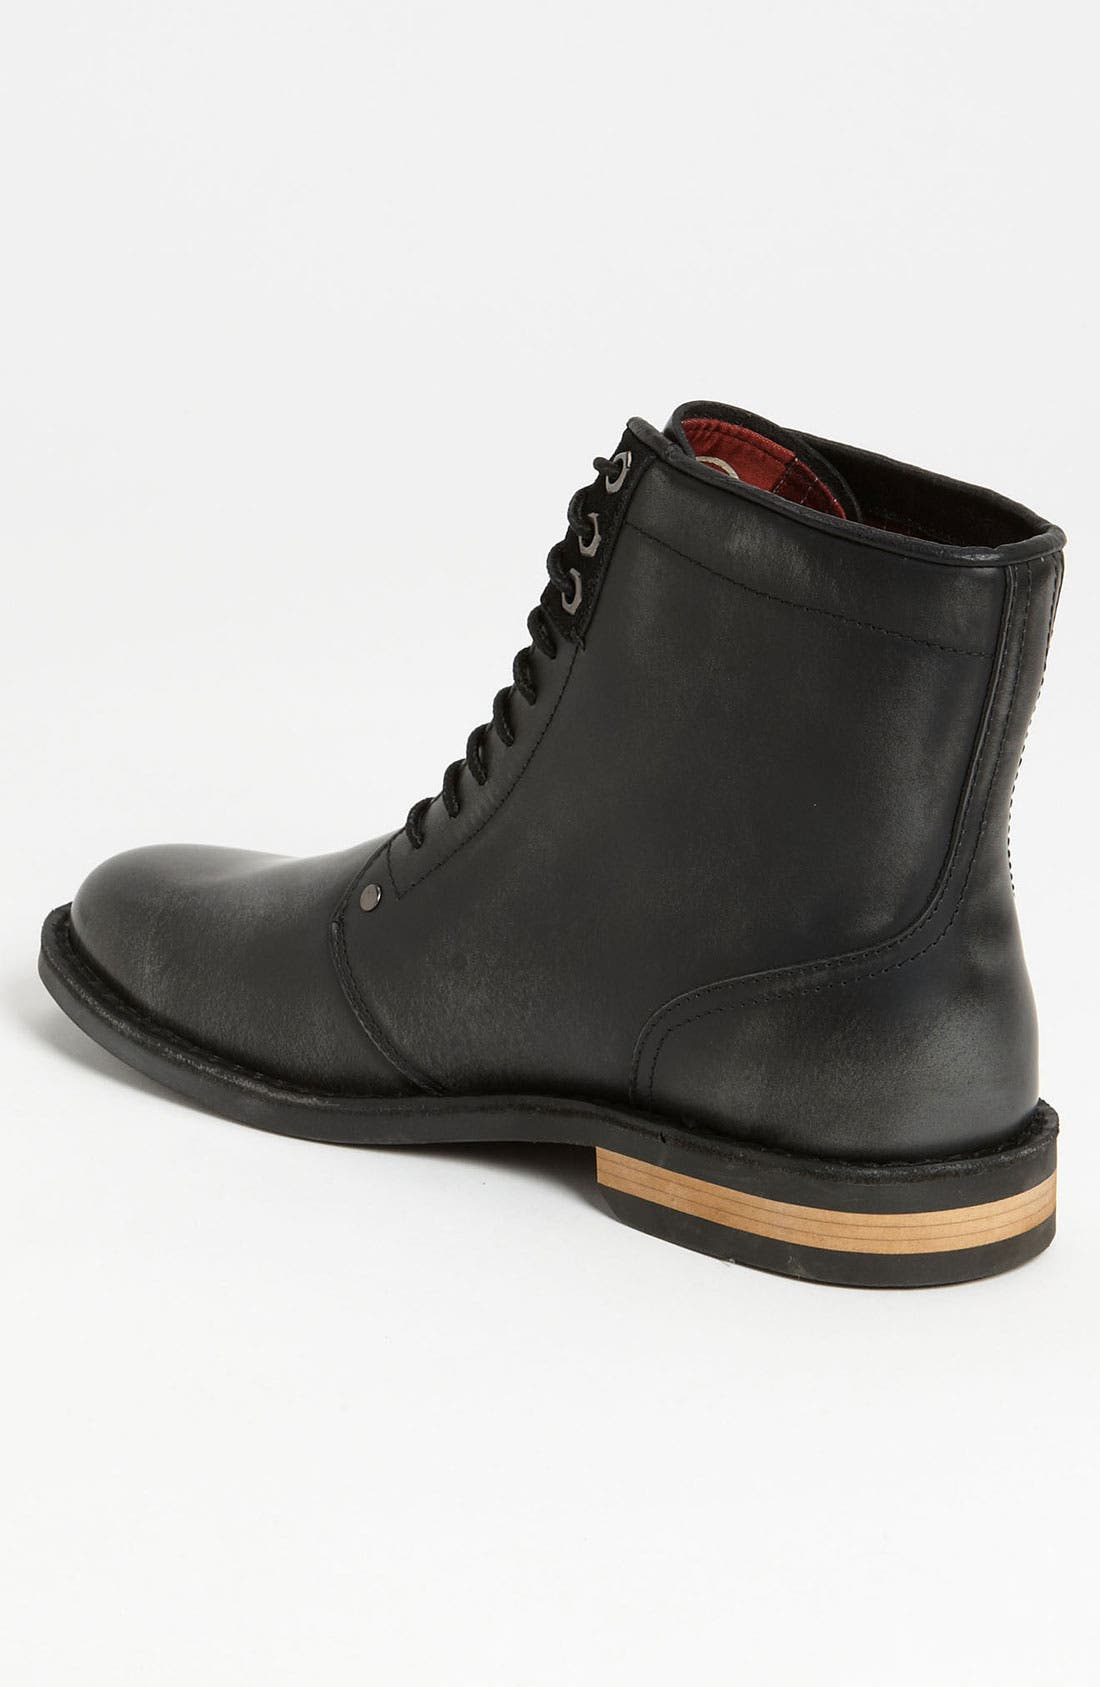 Alternate Image 2  - Original Penguin 'Jerry Jeff' Boot (Online Exclusive)